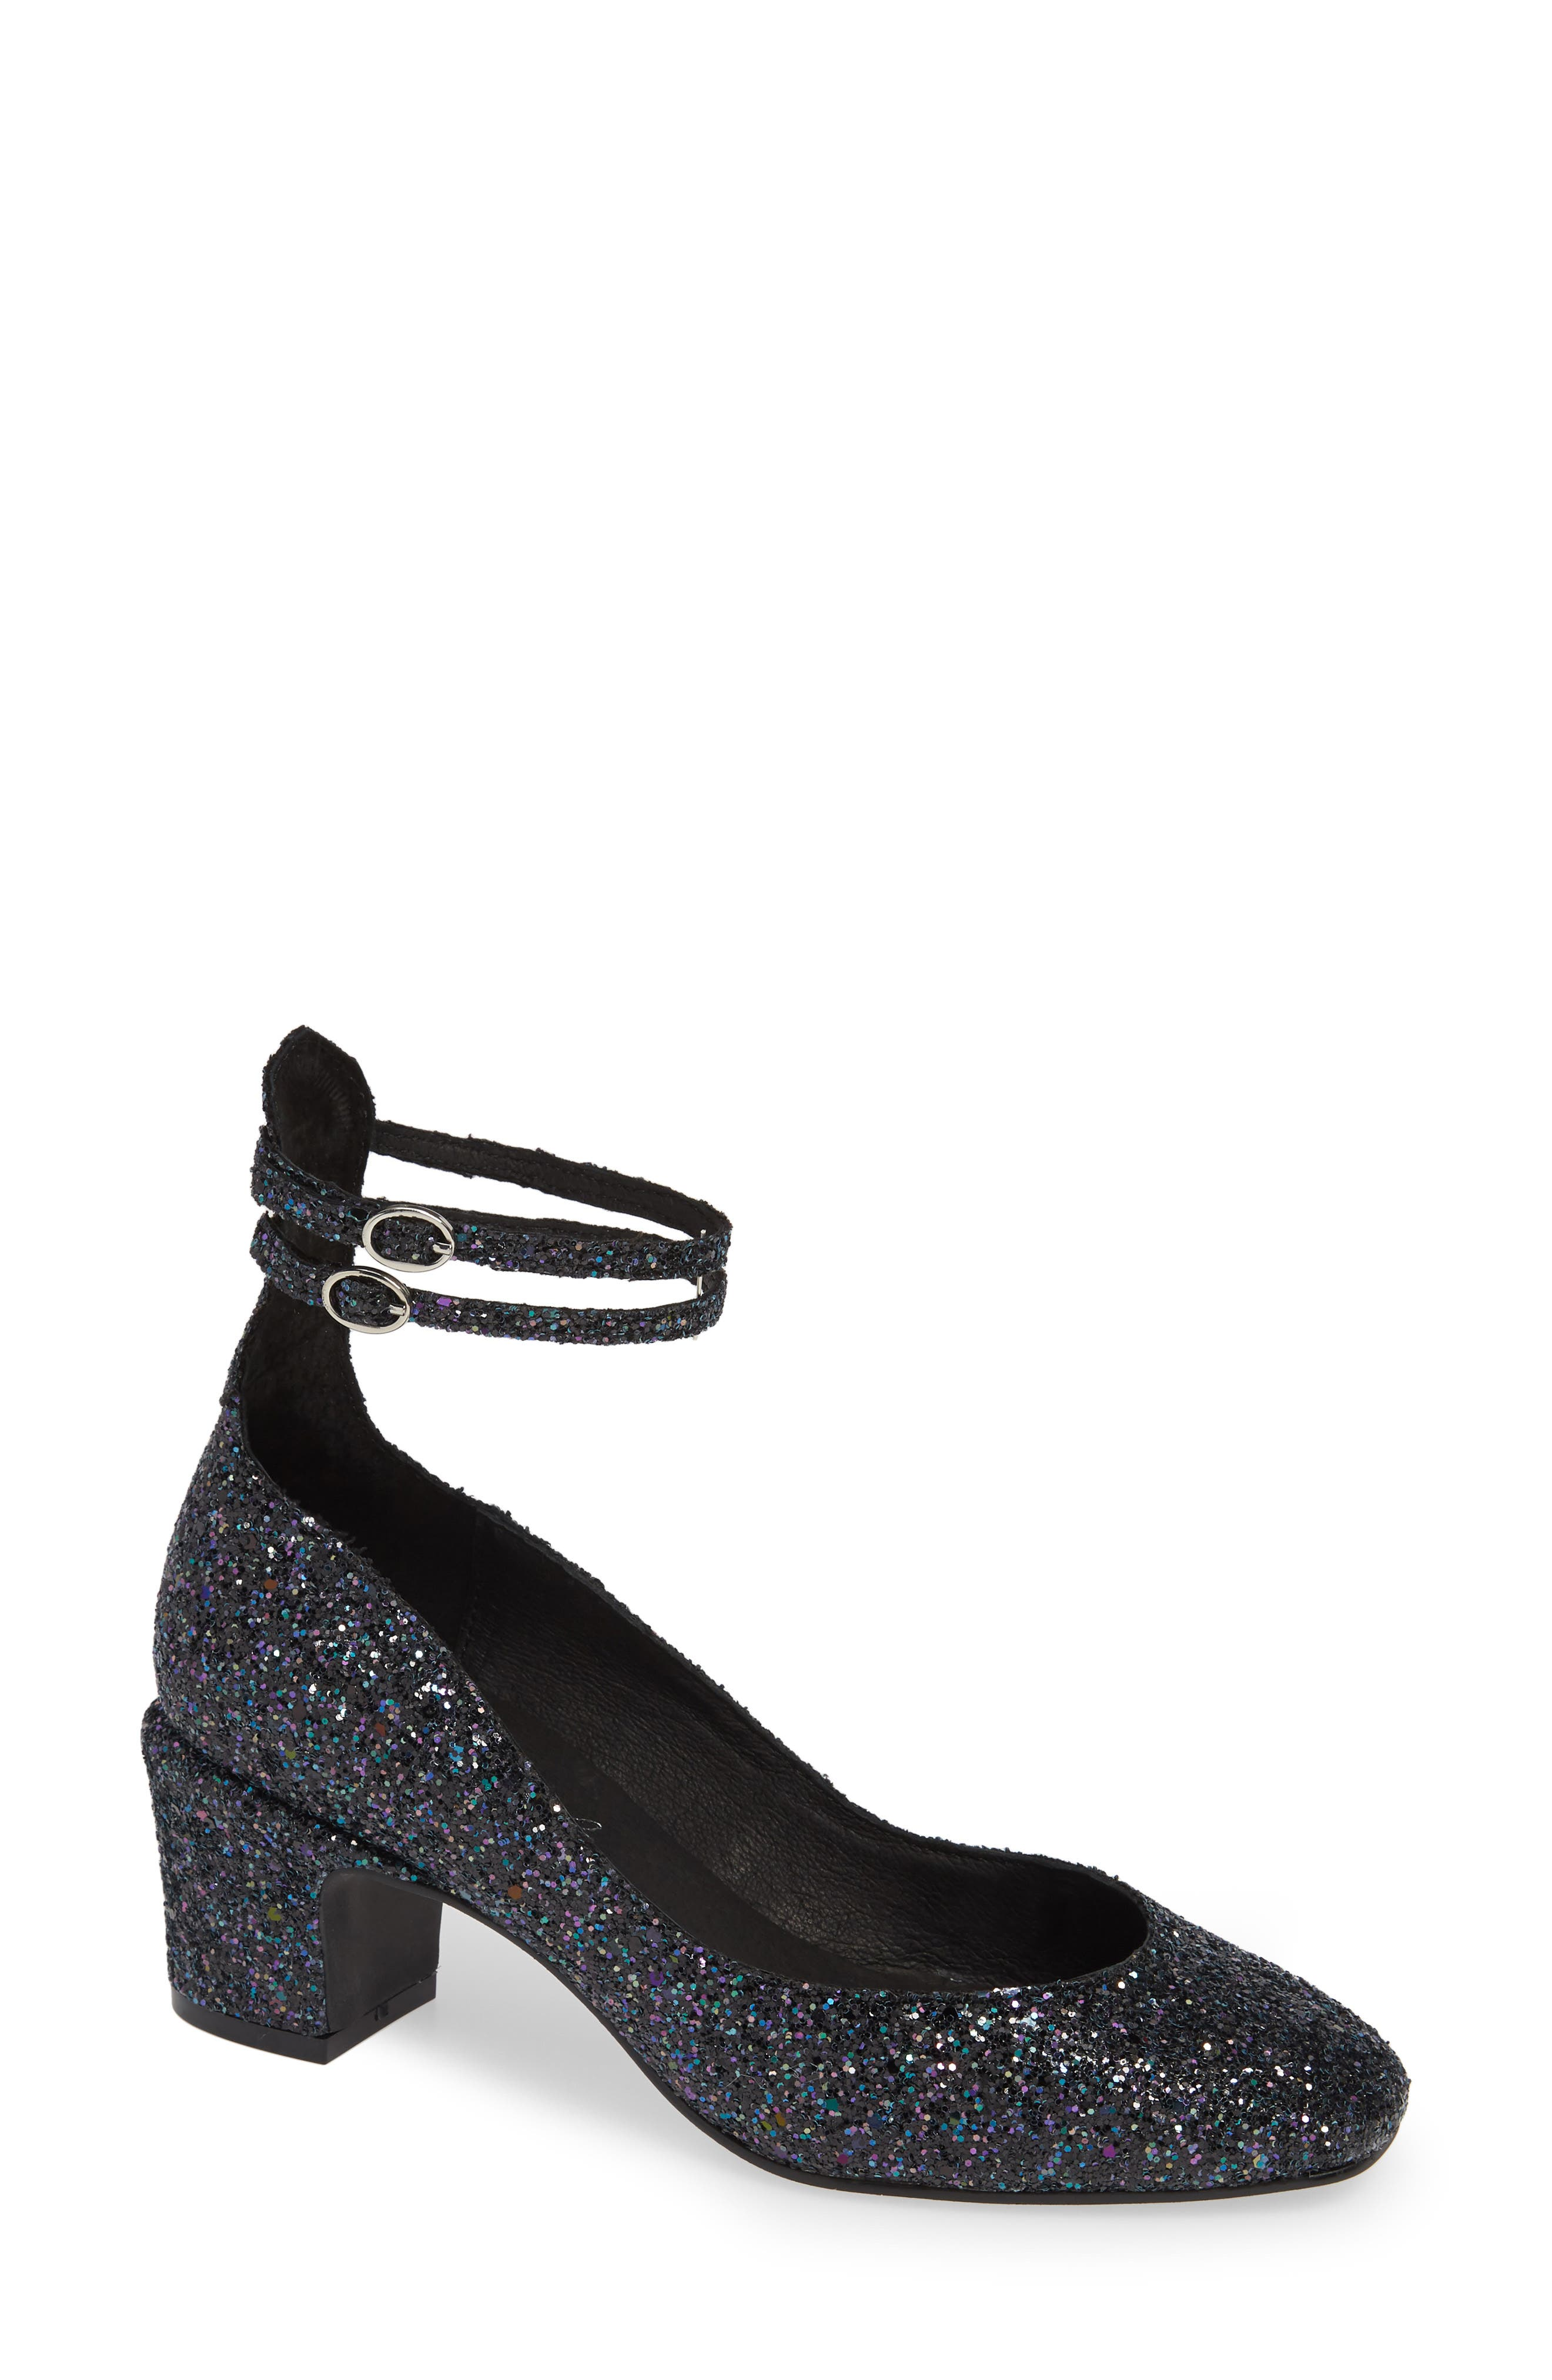 Lana Ankle Strap Pump,                         Main,                         color, NAVY GLITTER PATENT LEATHER